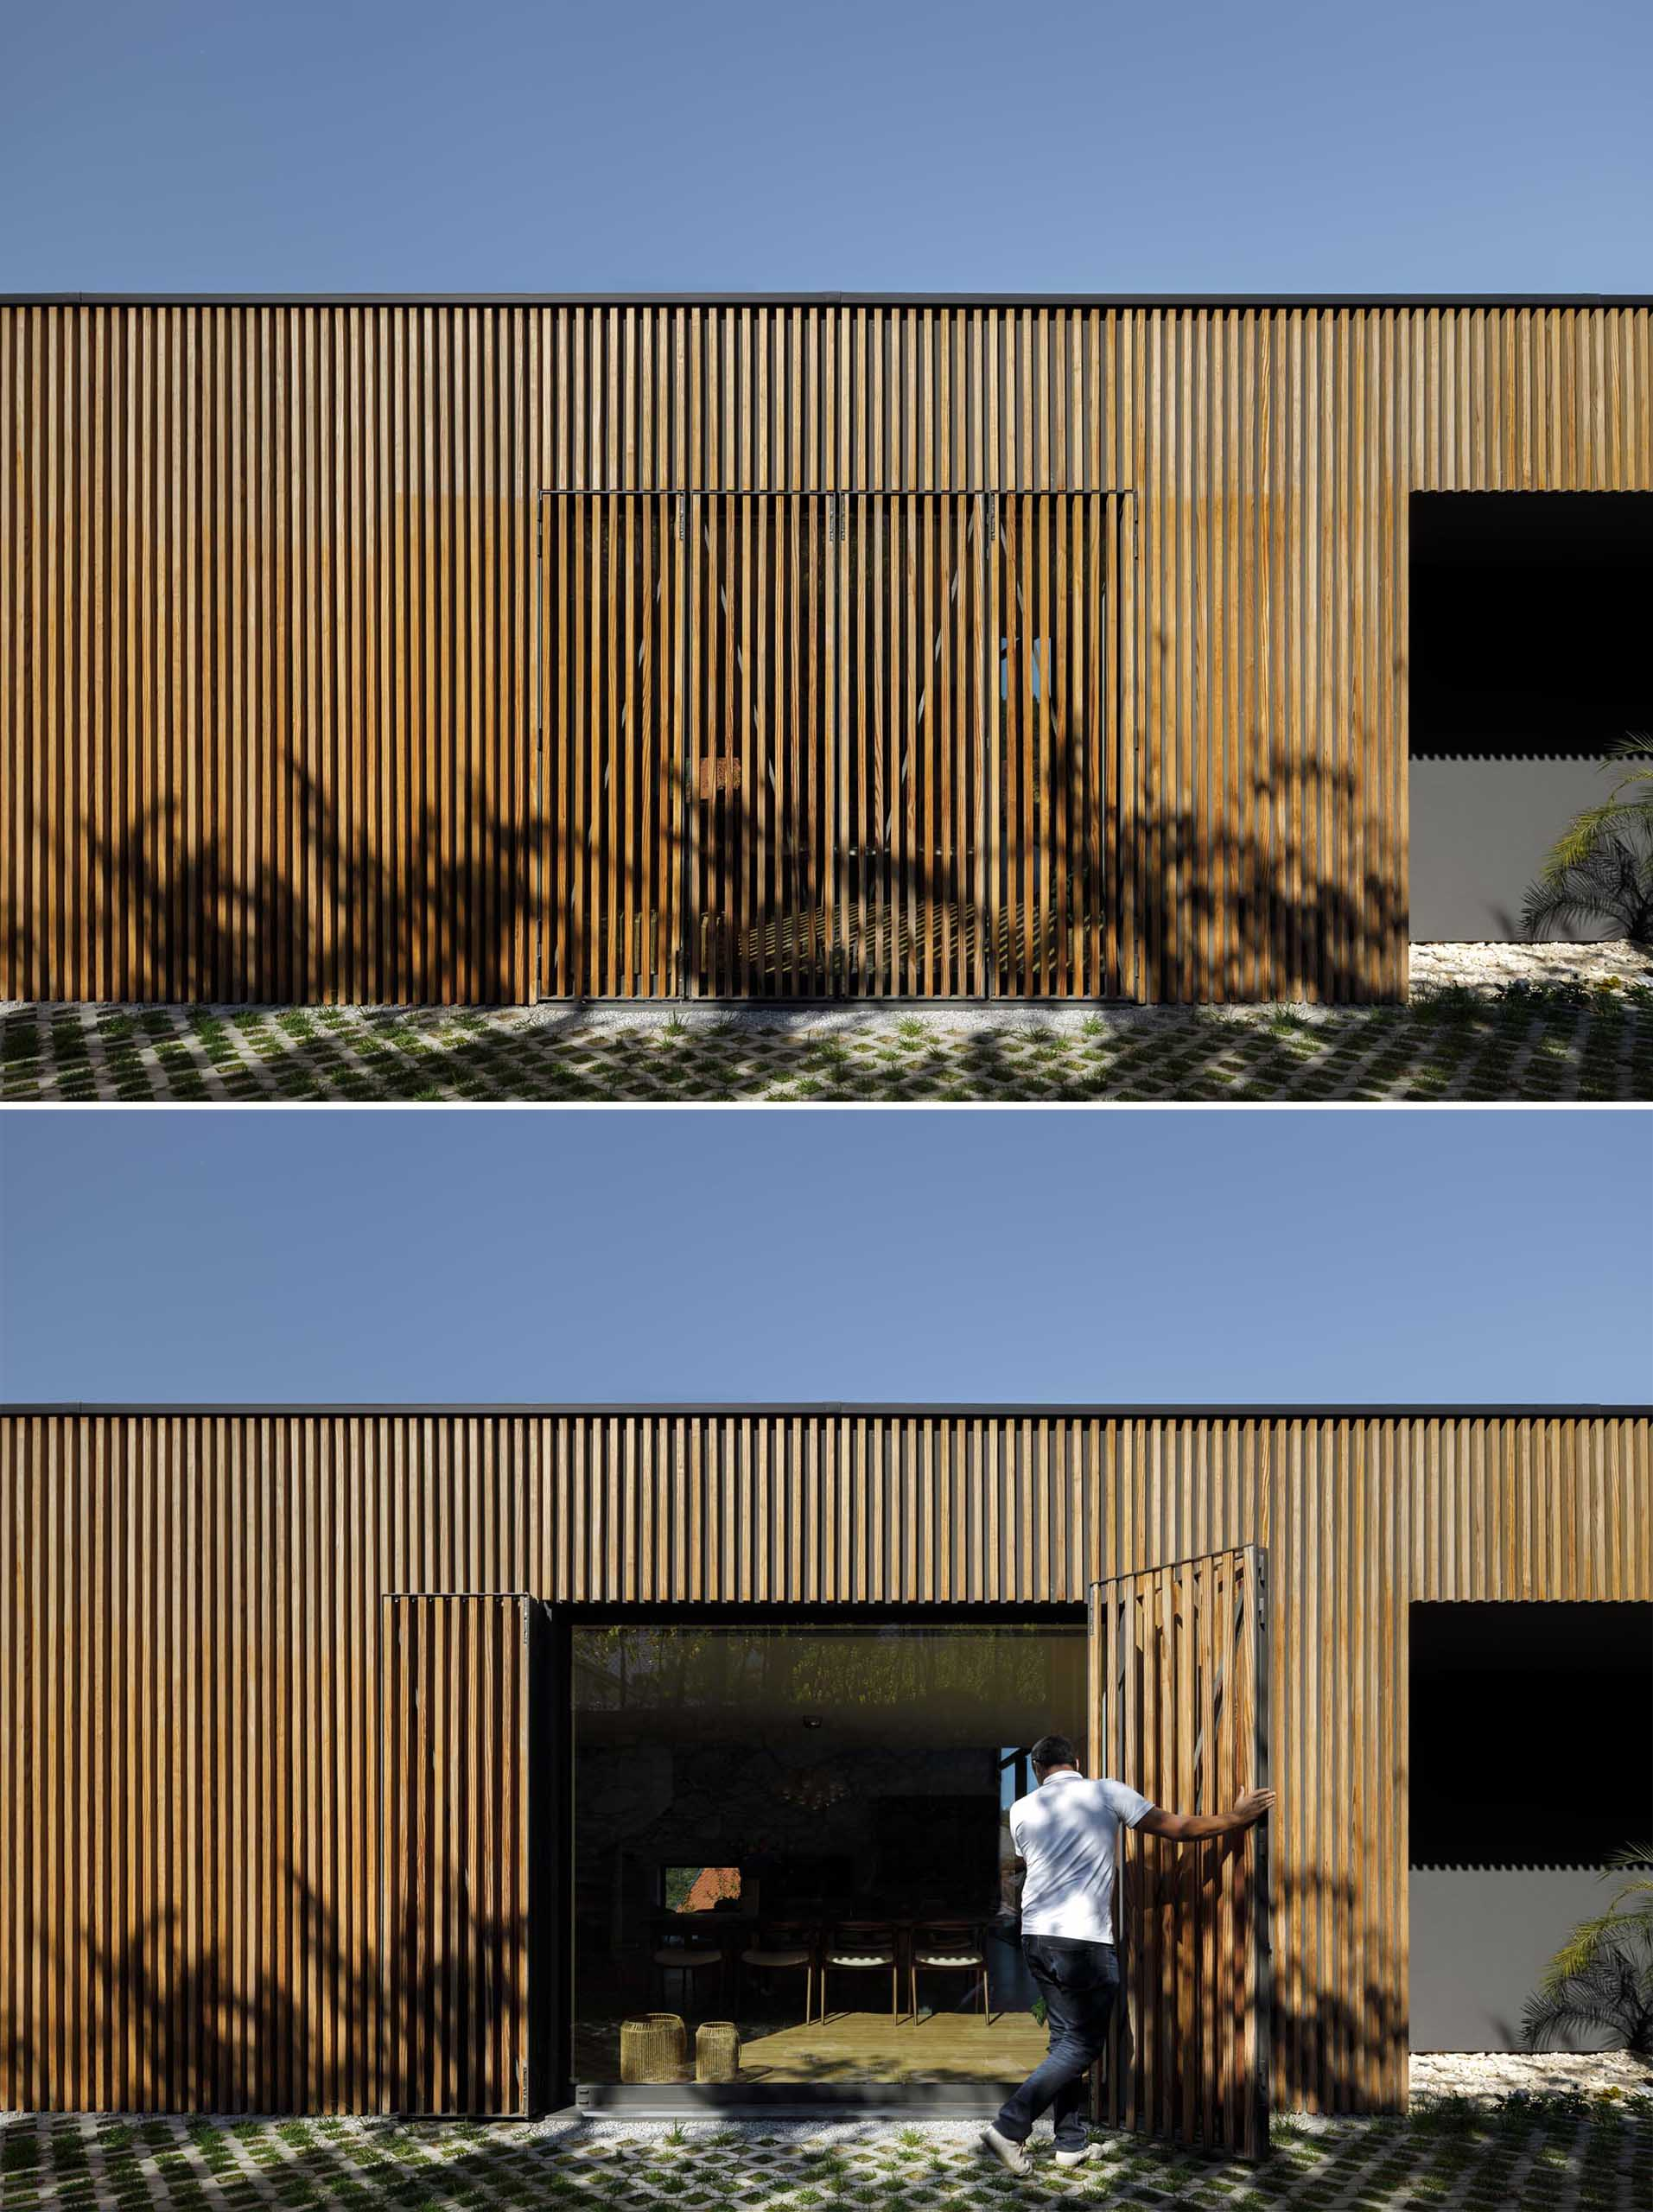 A modern home with a large window from view with a wood slat wall.